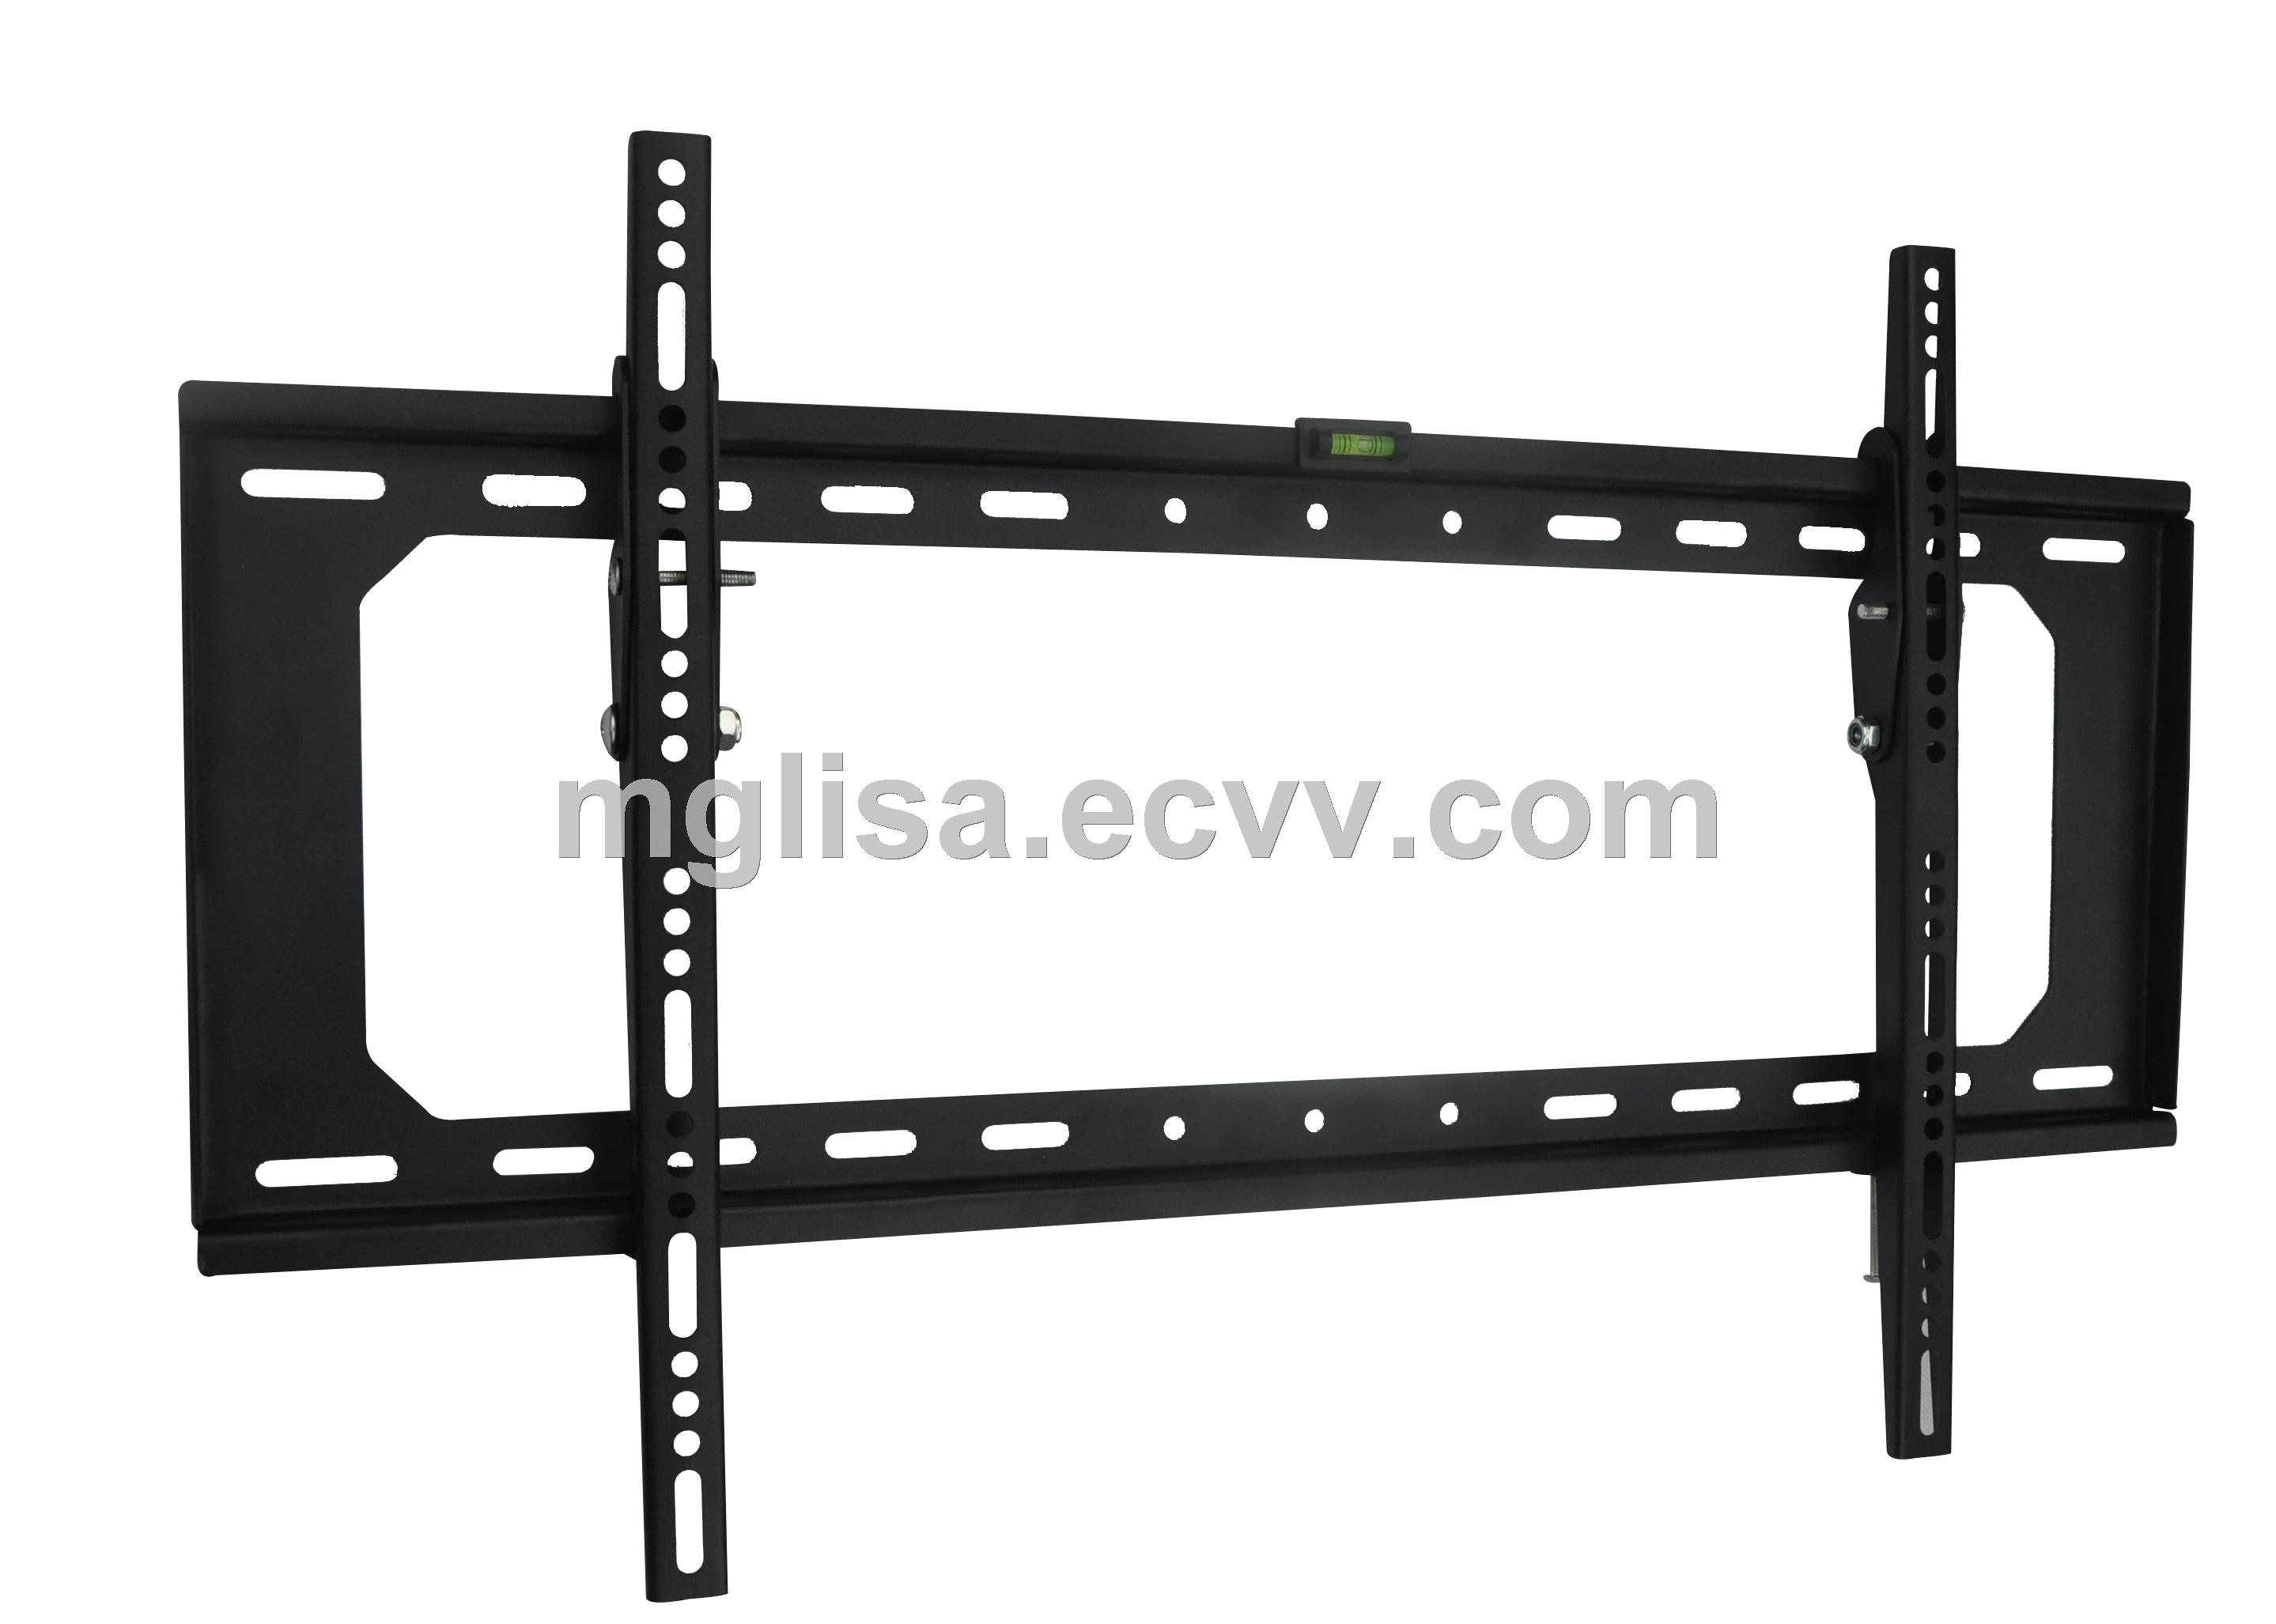 Led TV Holder for Flip Down TV Mount purchasing, souring agent ...